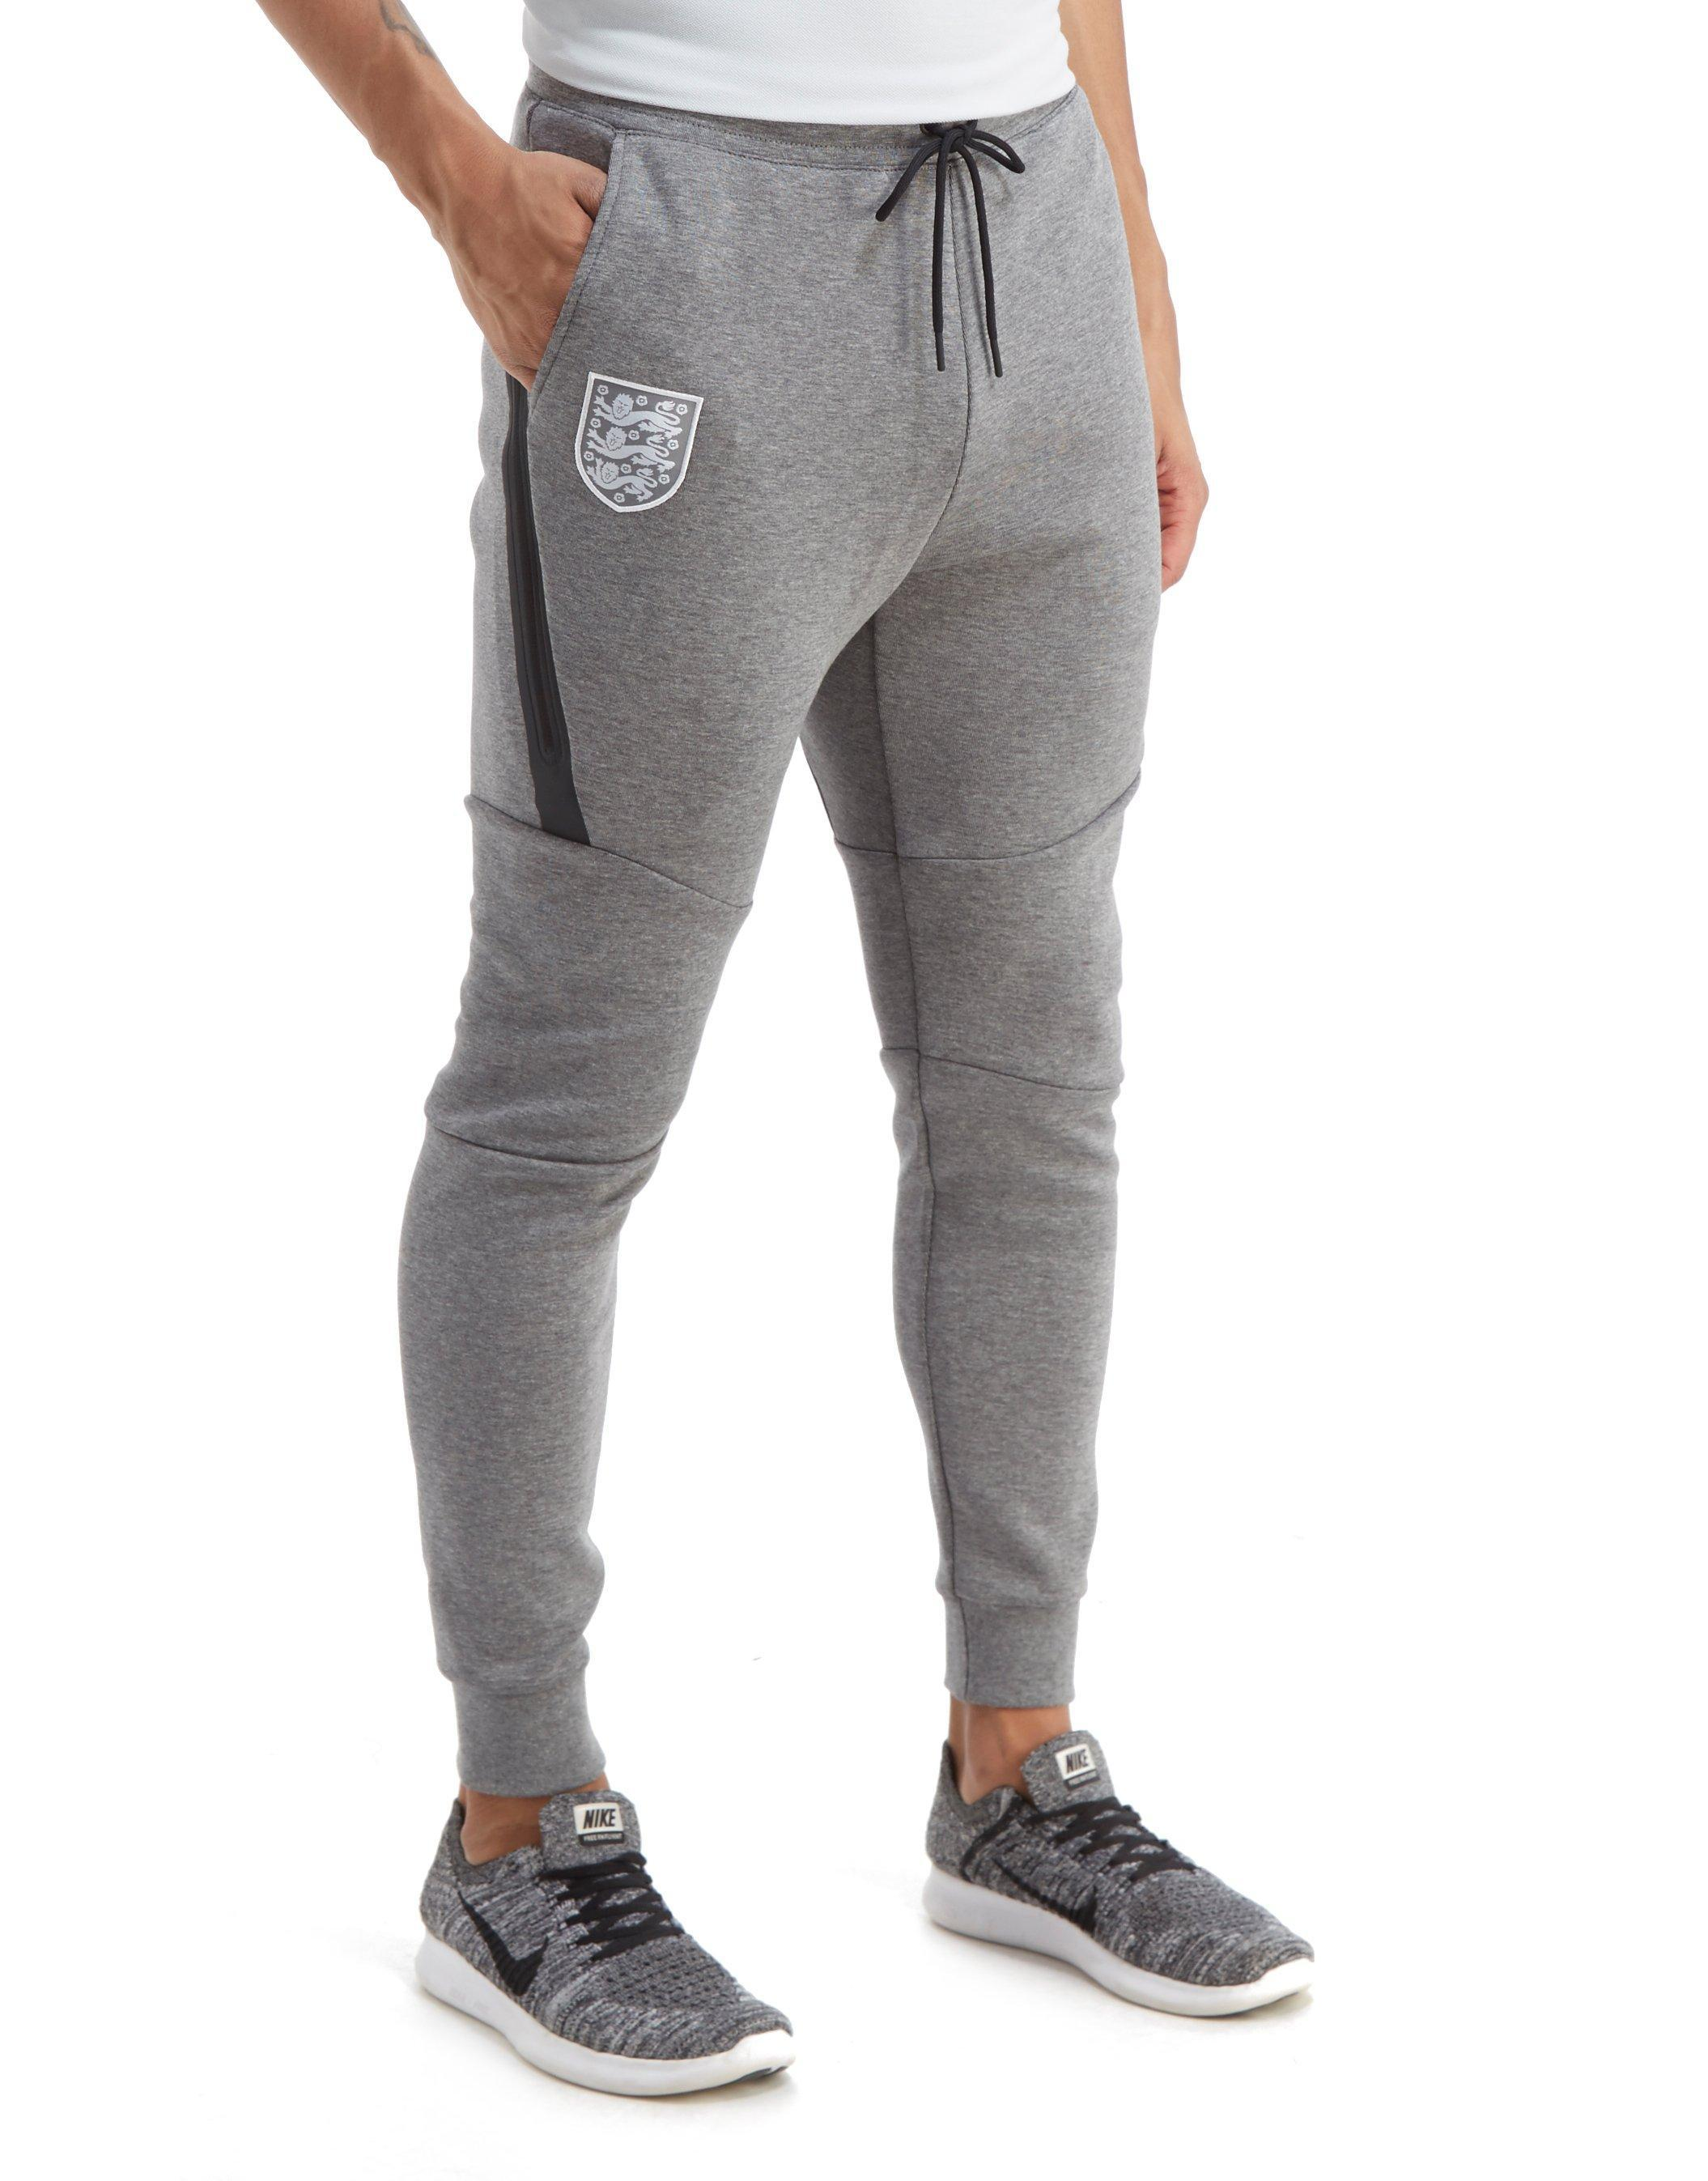 d7360ebed4e Nike England Tech Fleece Pants in Gray for Men - Lyst